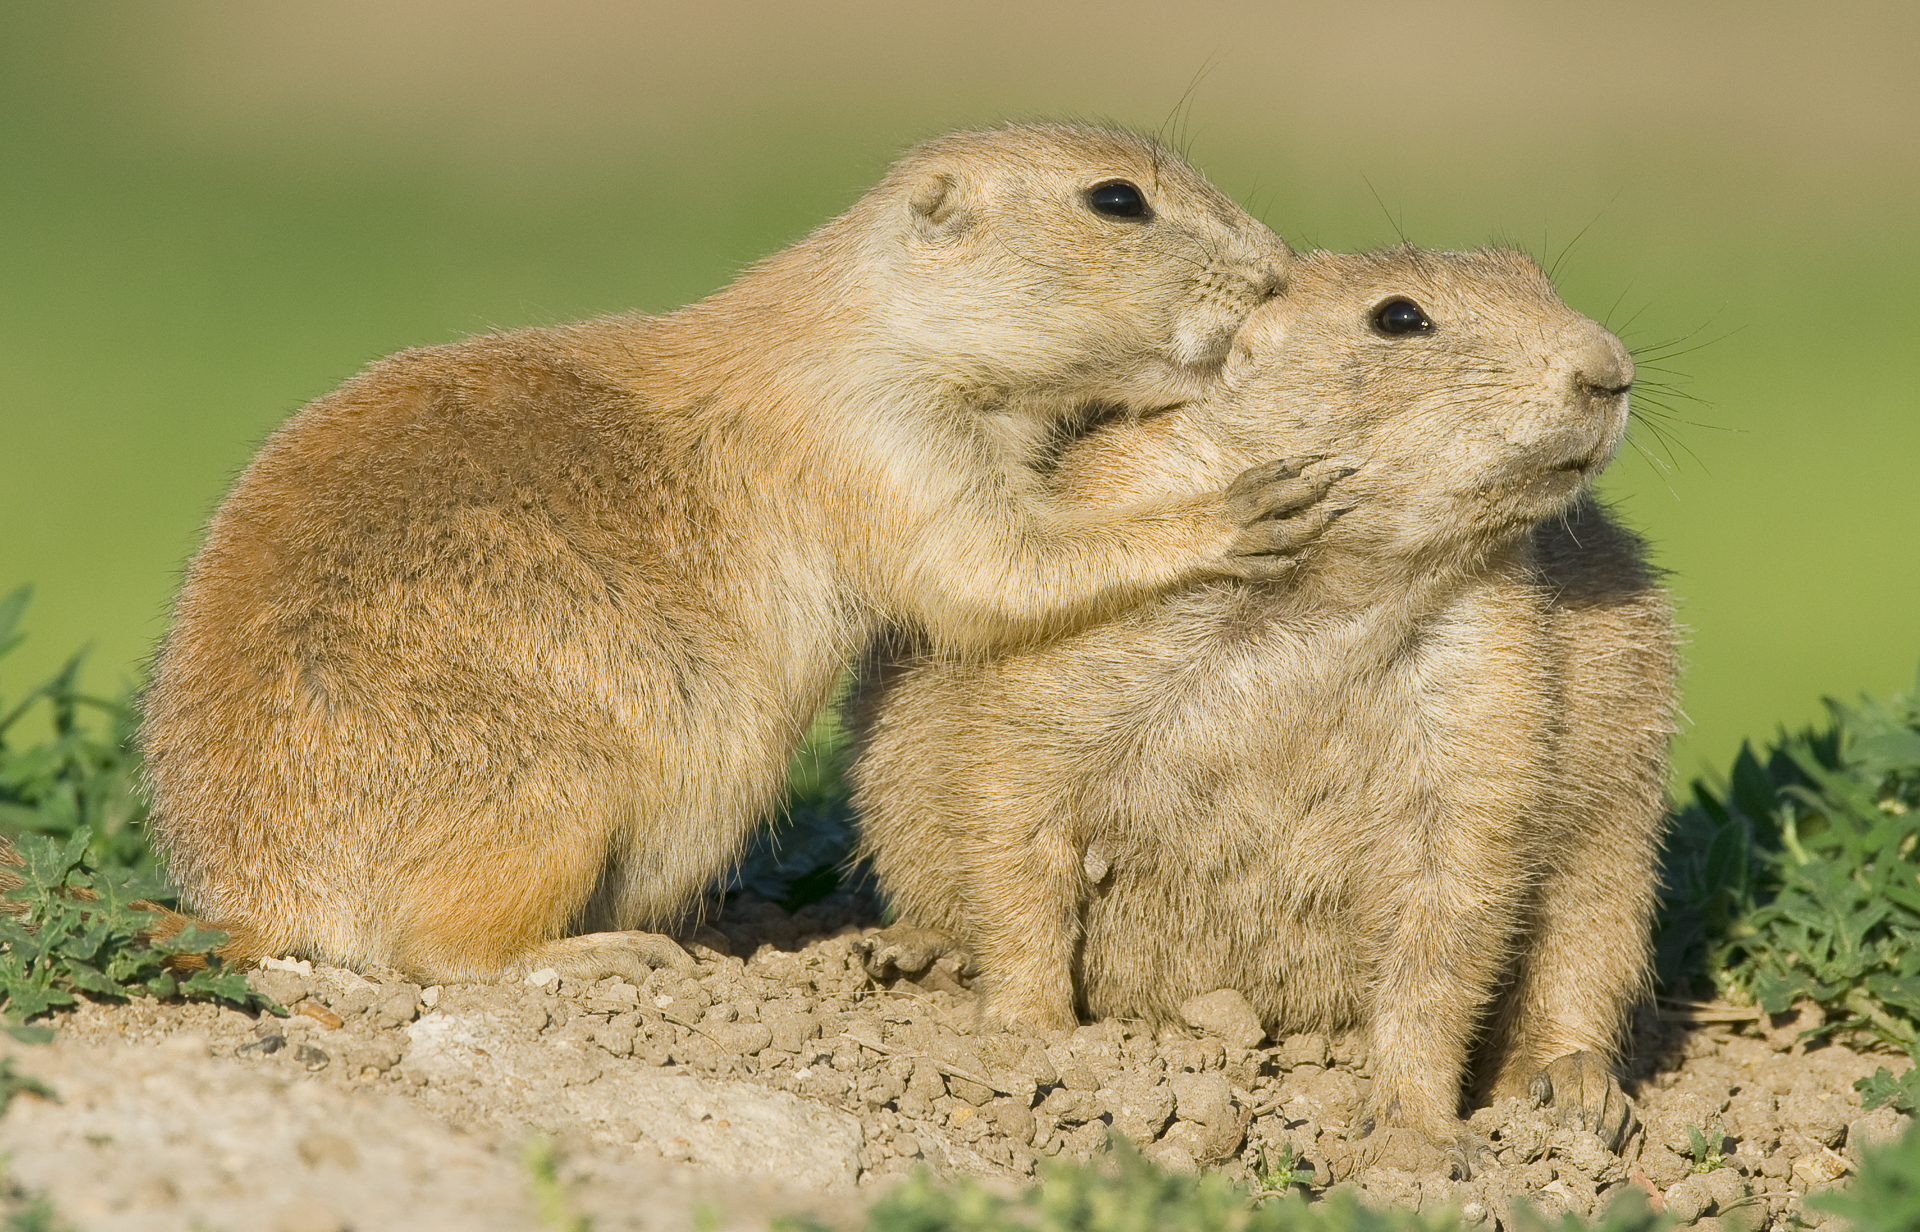 Prairie dogs grooming each other